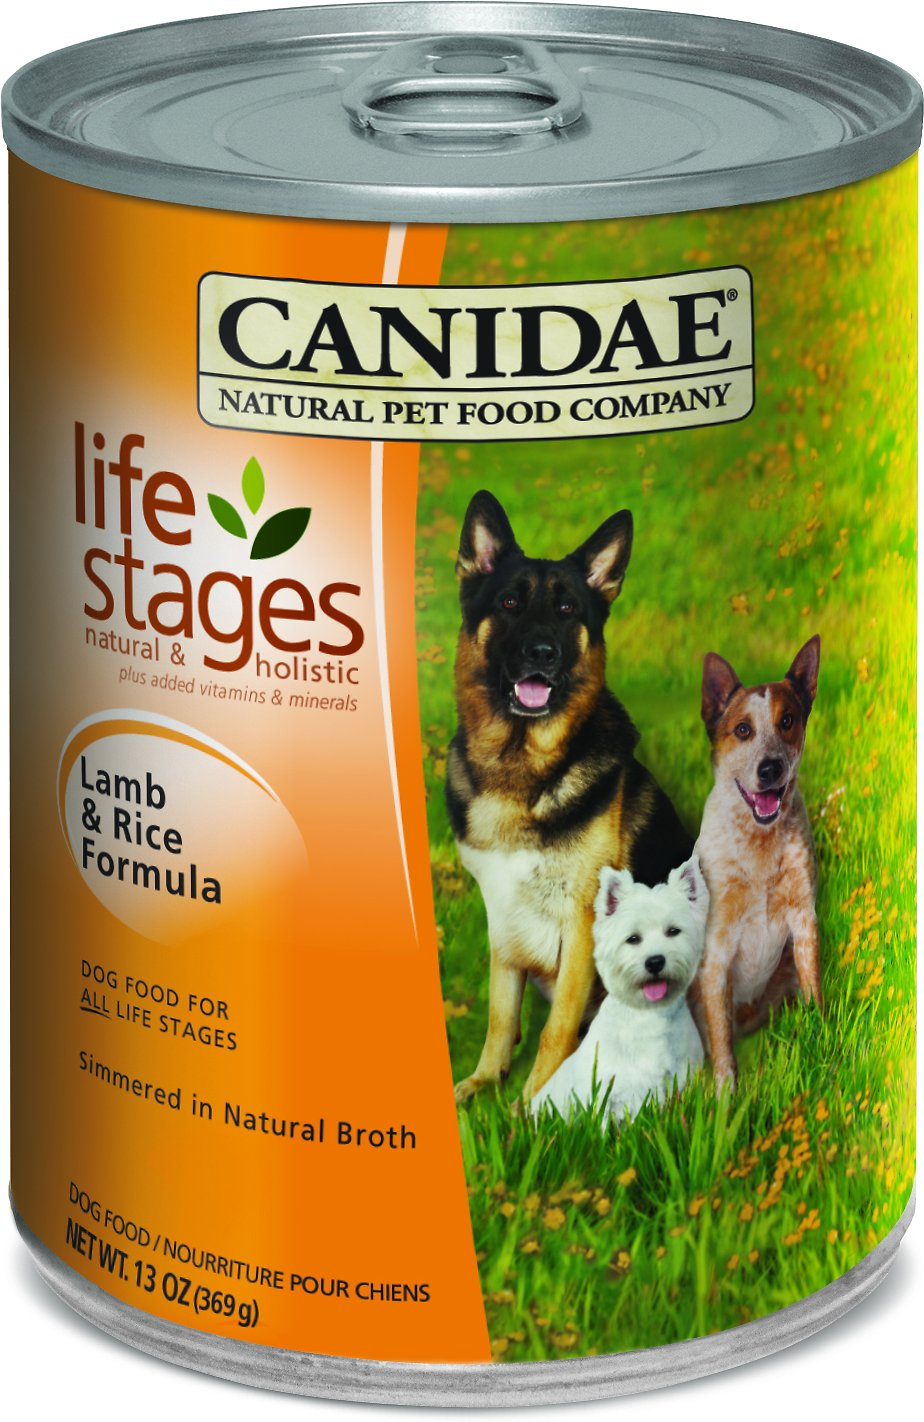 CANIDAE Life Stages Lamb & Rice Formula Canned Dog Food, 13-oz